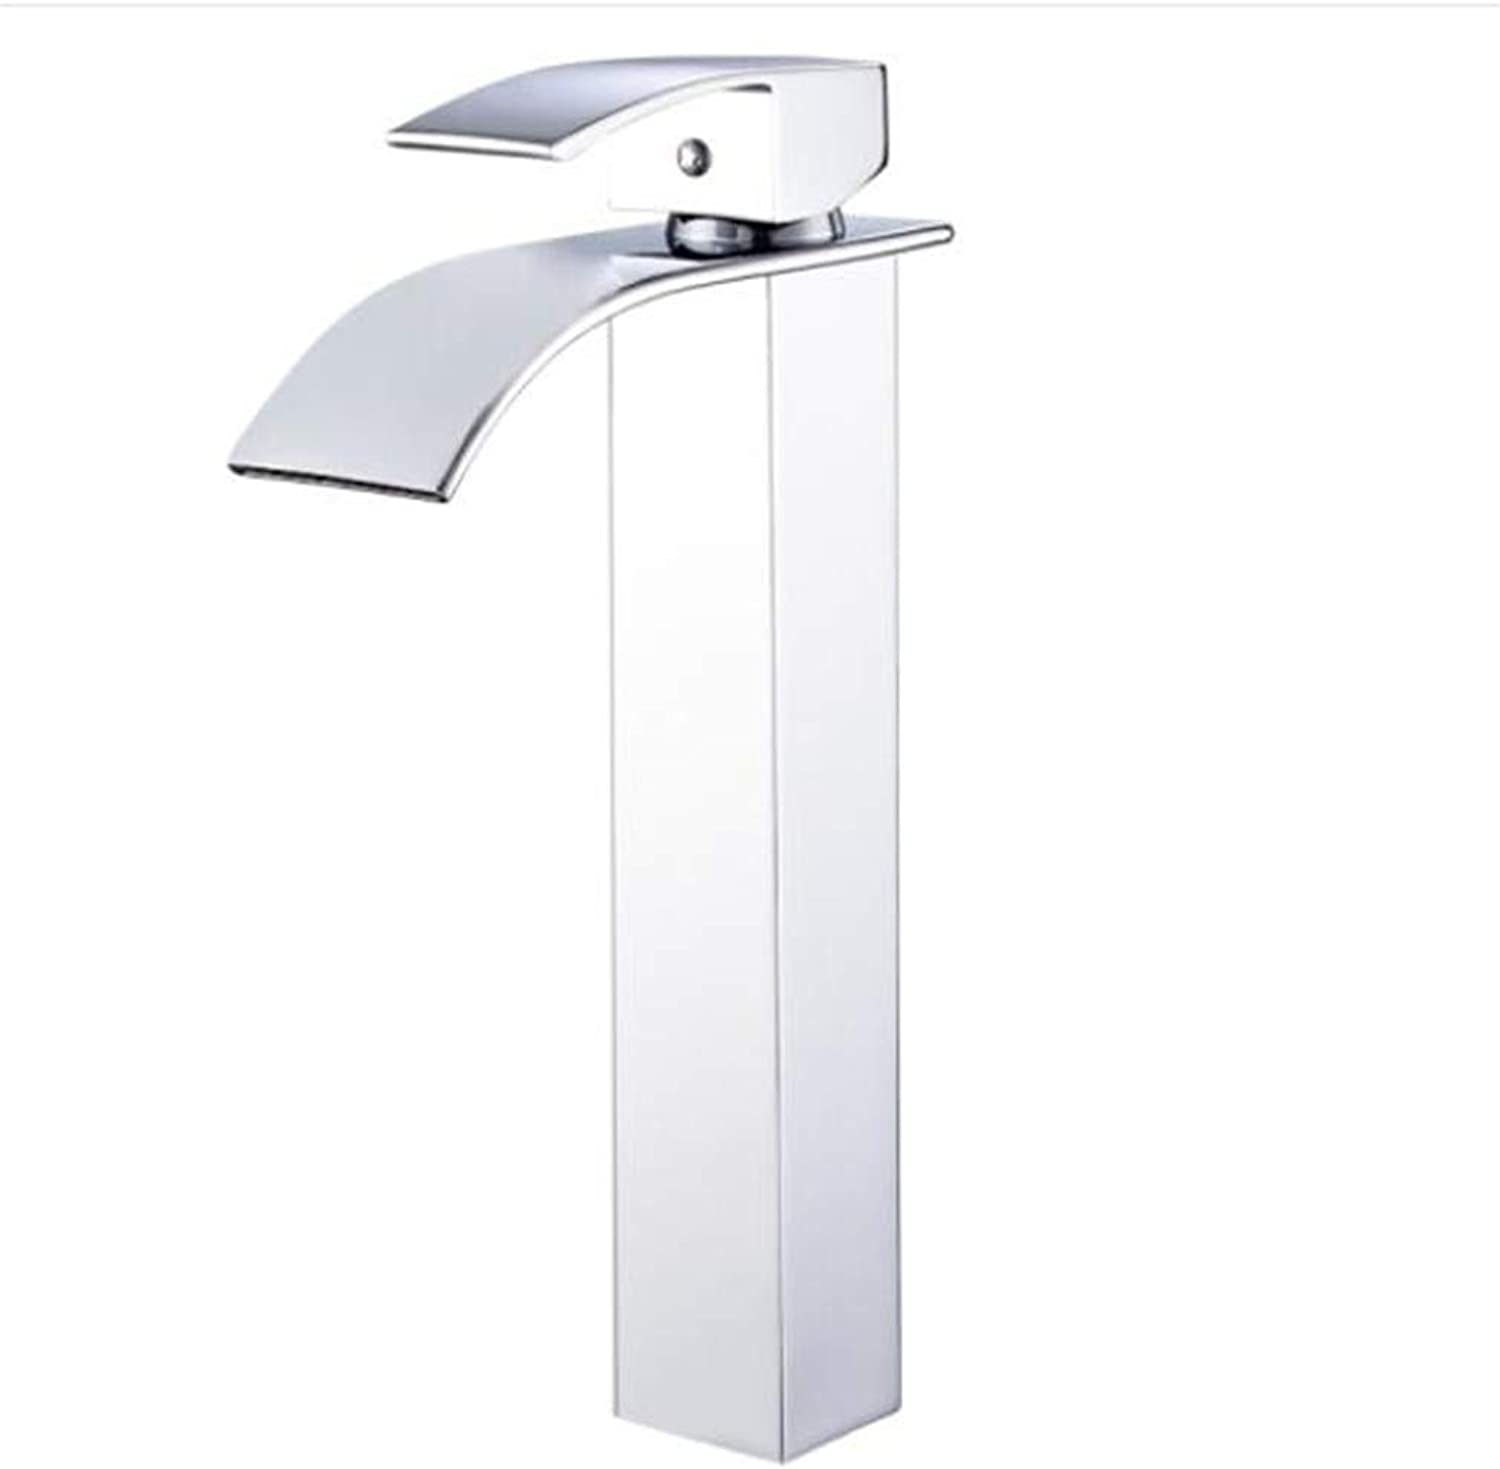 Bathroom Sink Basin Lever Mixer Tap Copper Single-Hole Basin, Hot and Cold Water Faucet, Washbasin Faucet, Bathroom Stage, Basin Faucet